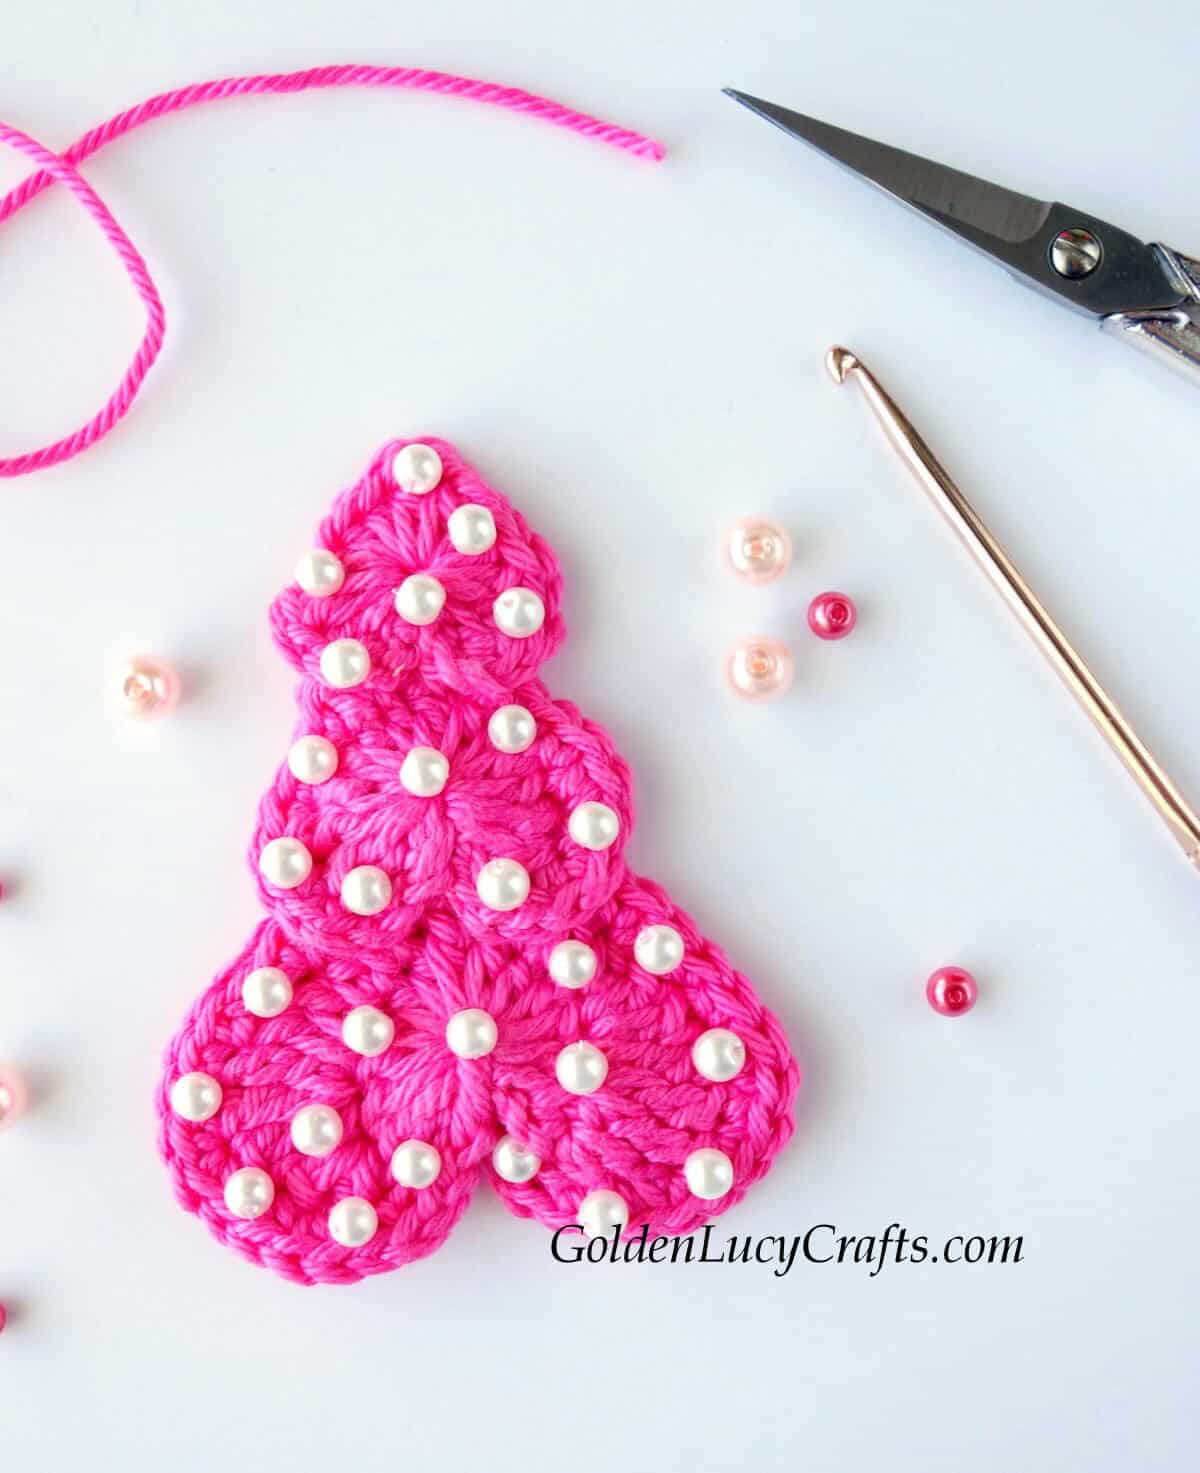 Crochet Christmas tree applique in pink color embellished with pearl beads.